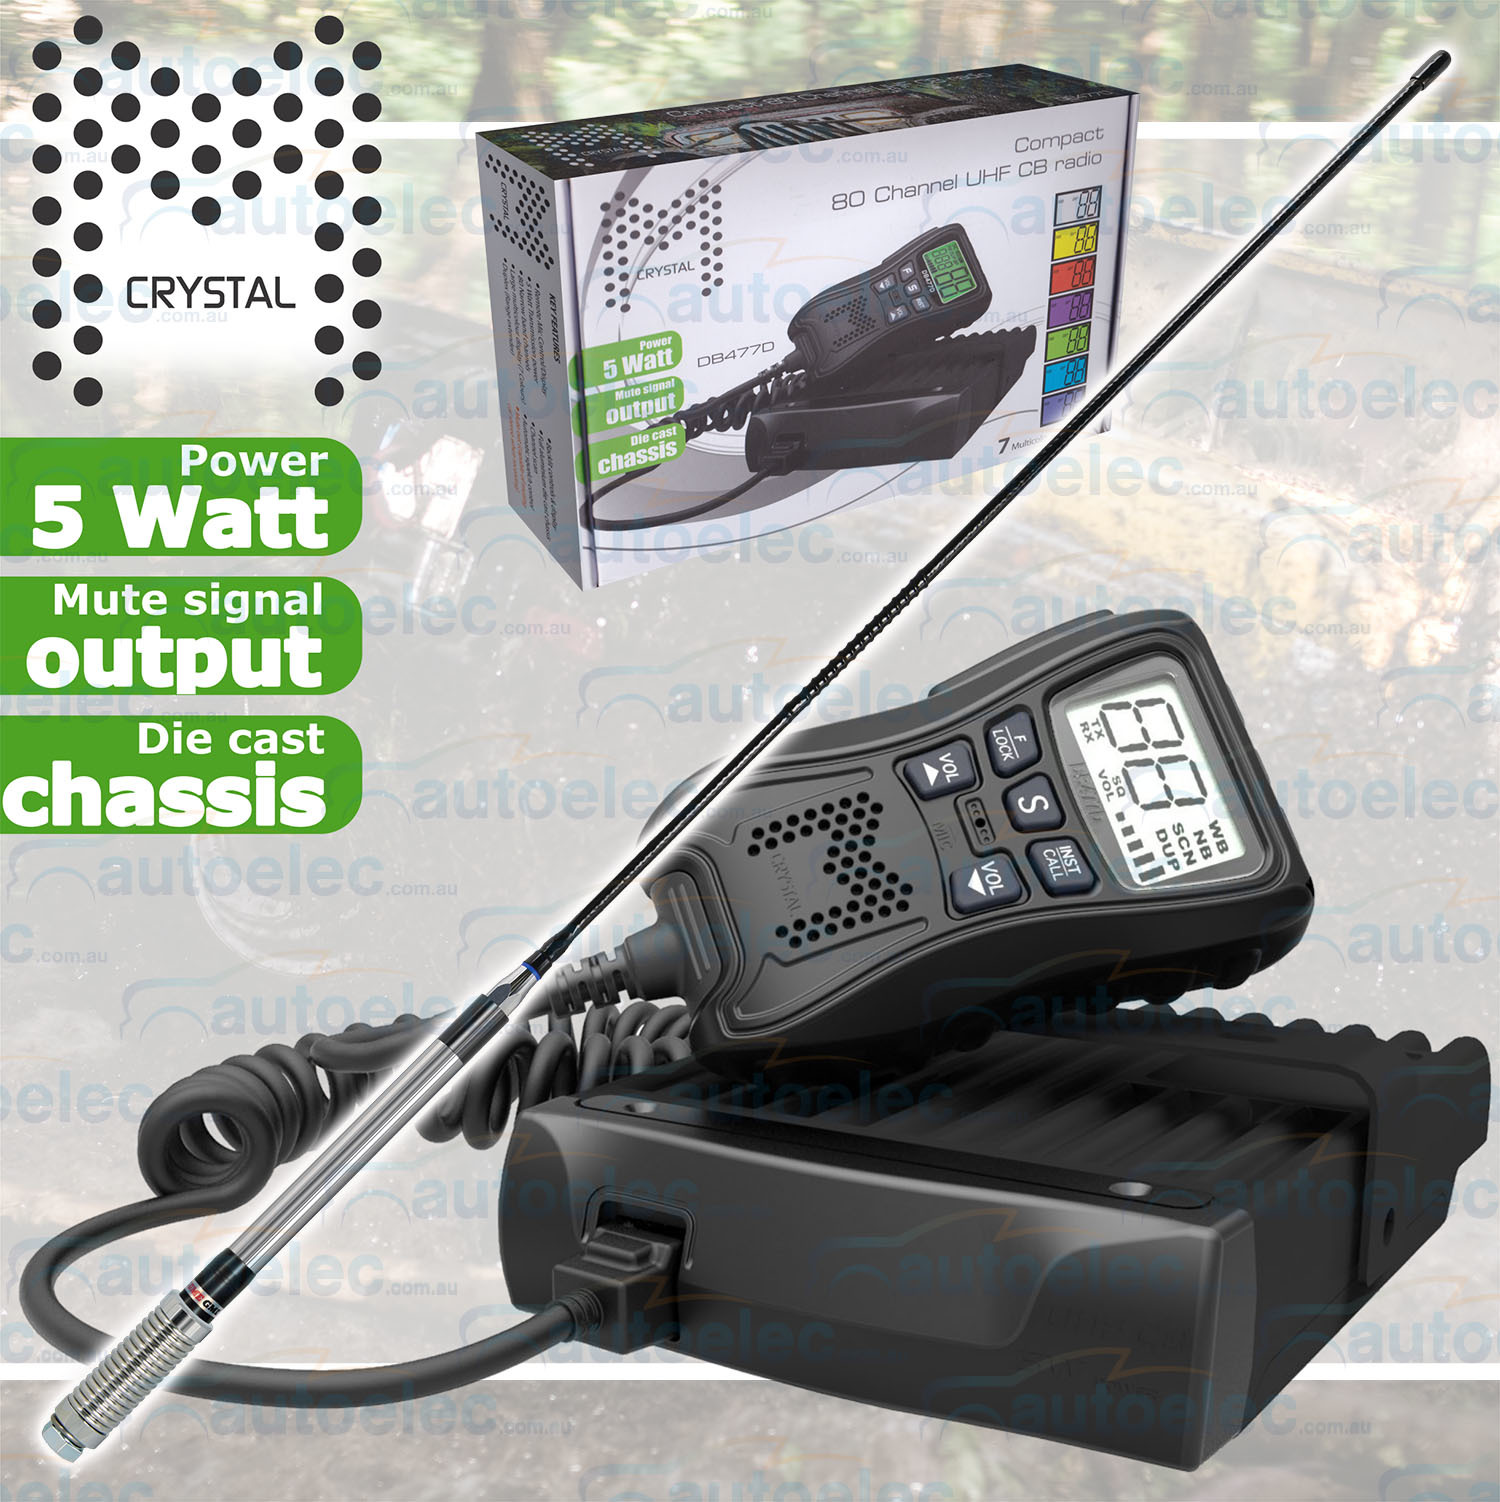 hight resolution of details about crystal 5 watt db477d uhf cb radio 2way mobile remote display mic gme antenna